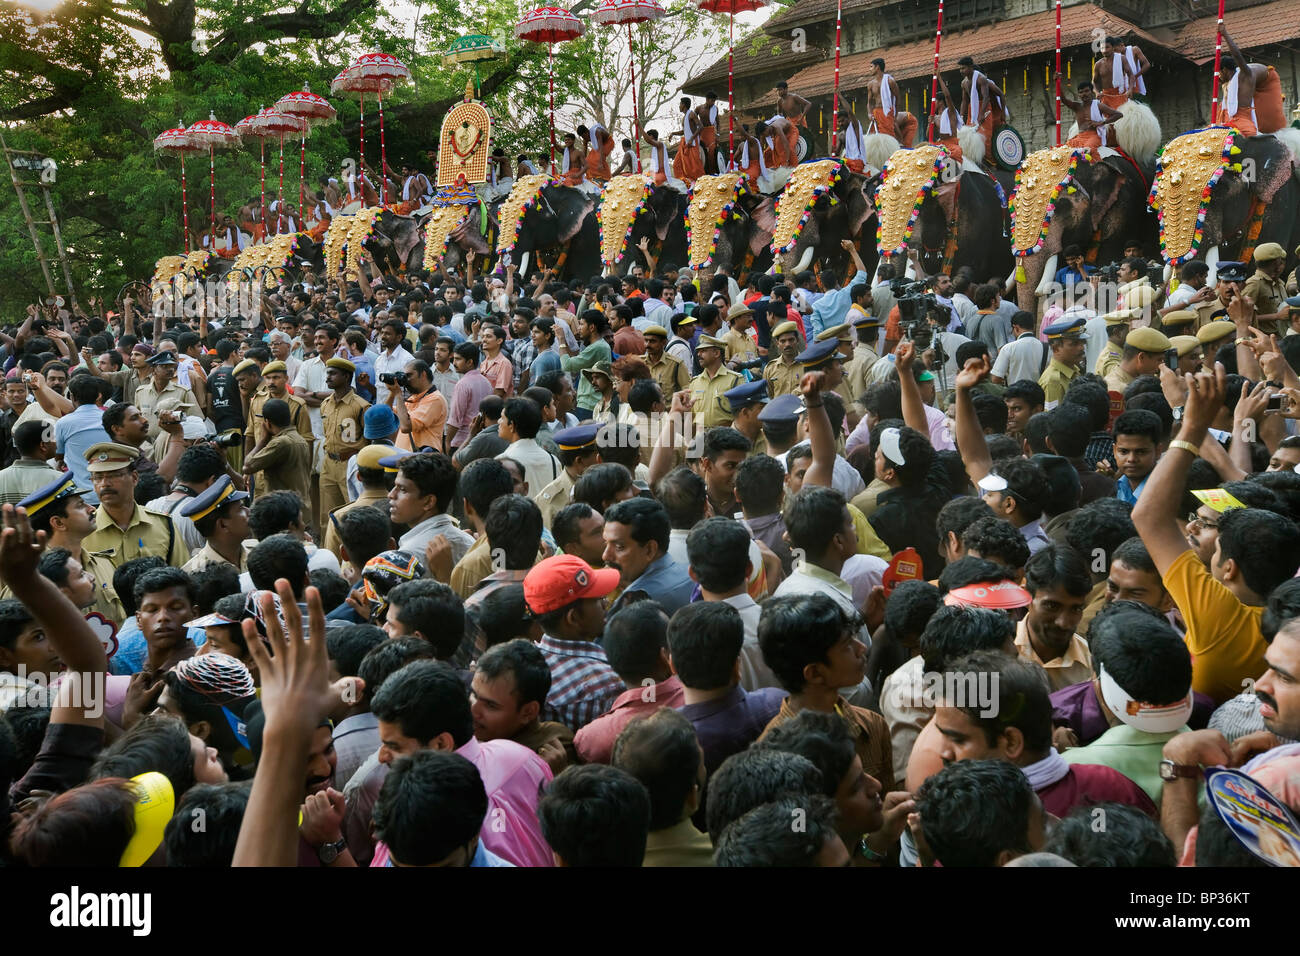 India Kerala Thrissur the Pooram Elephant Festival - Stock Image